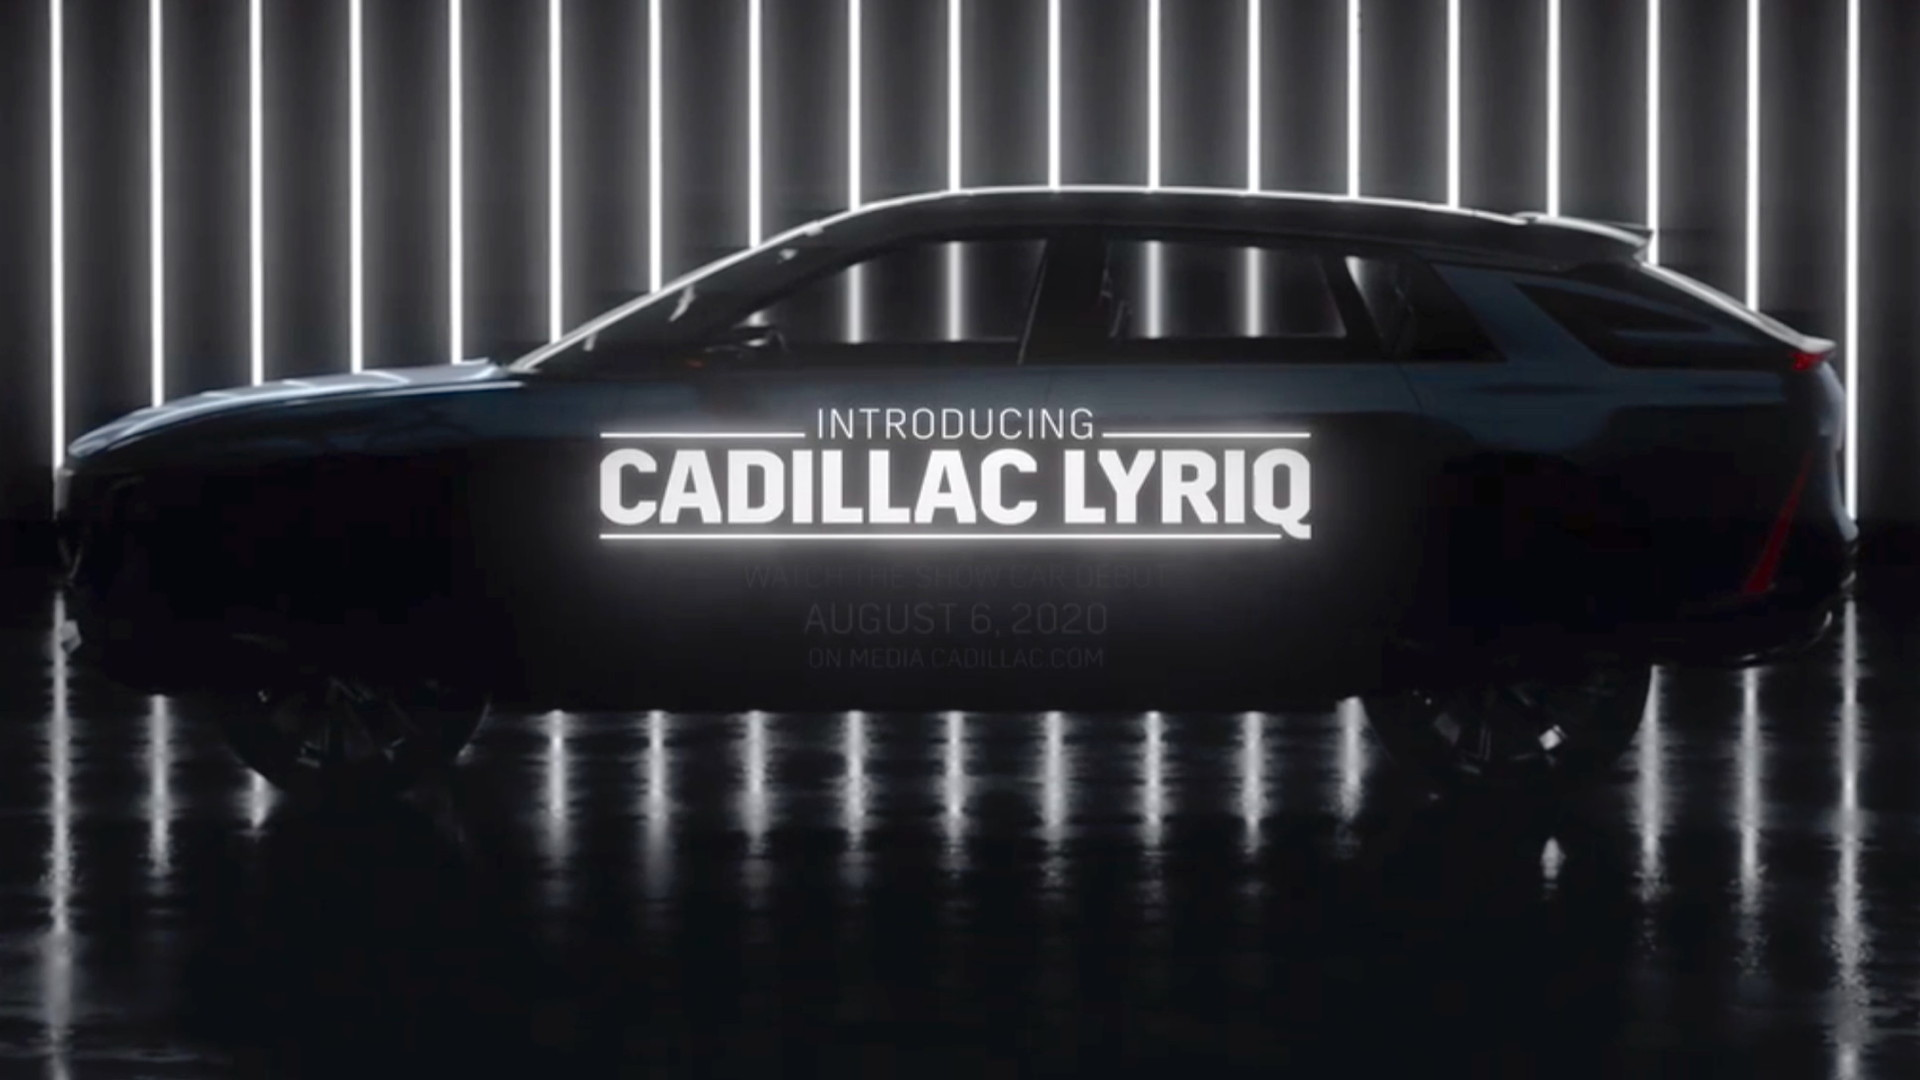 Cadillac Lyriq silhouette  -  from teaser video, June 2020